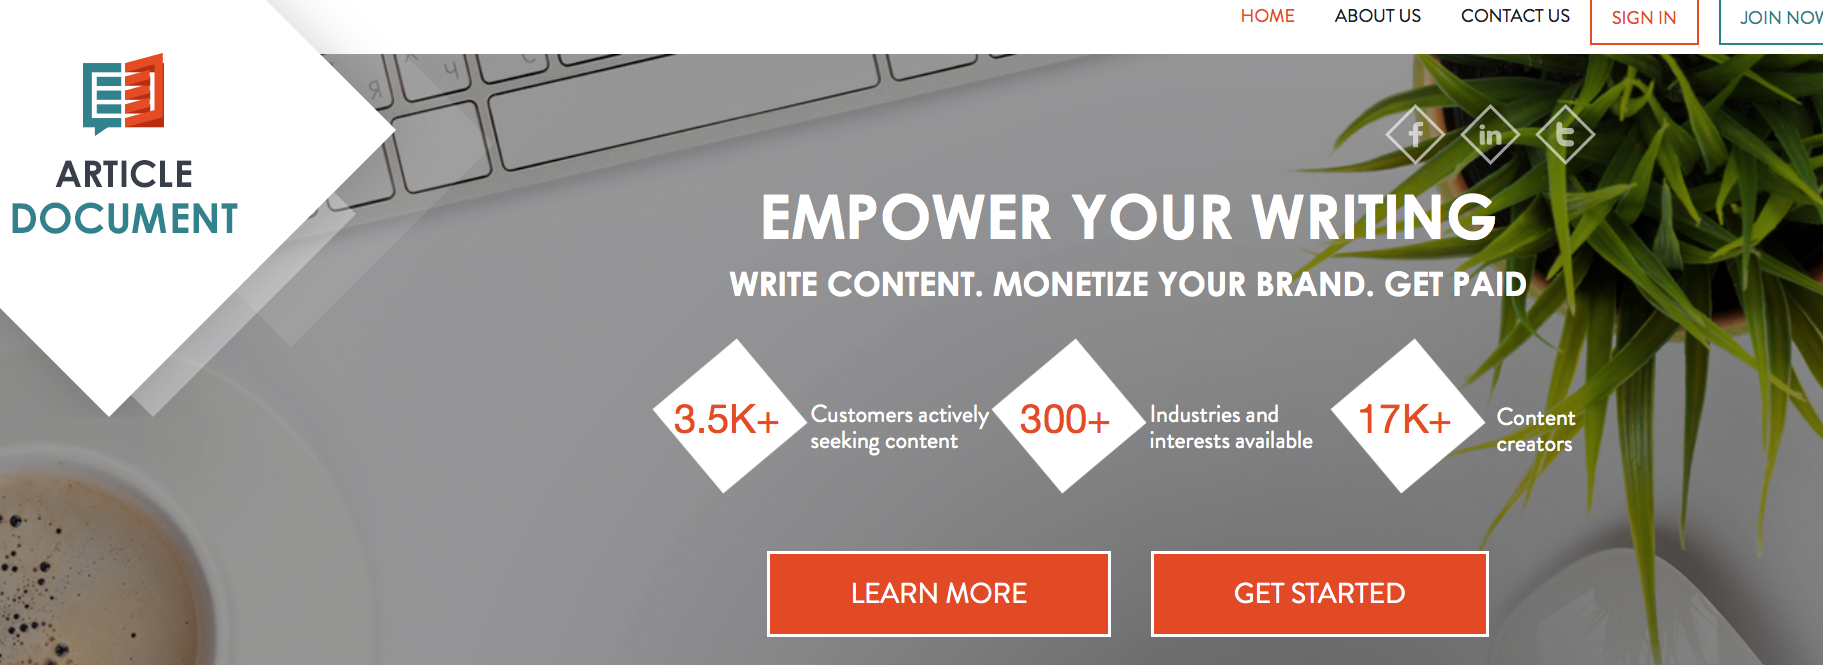 Blog content writing services blogmutt